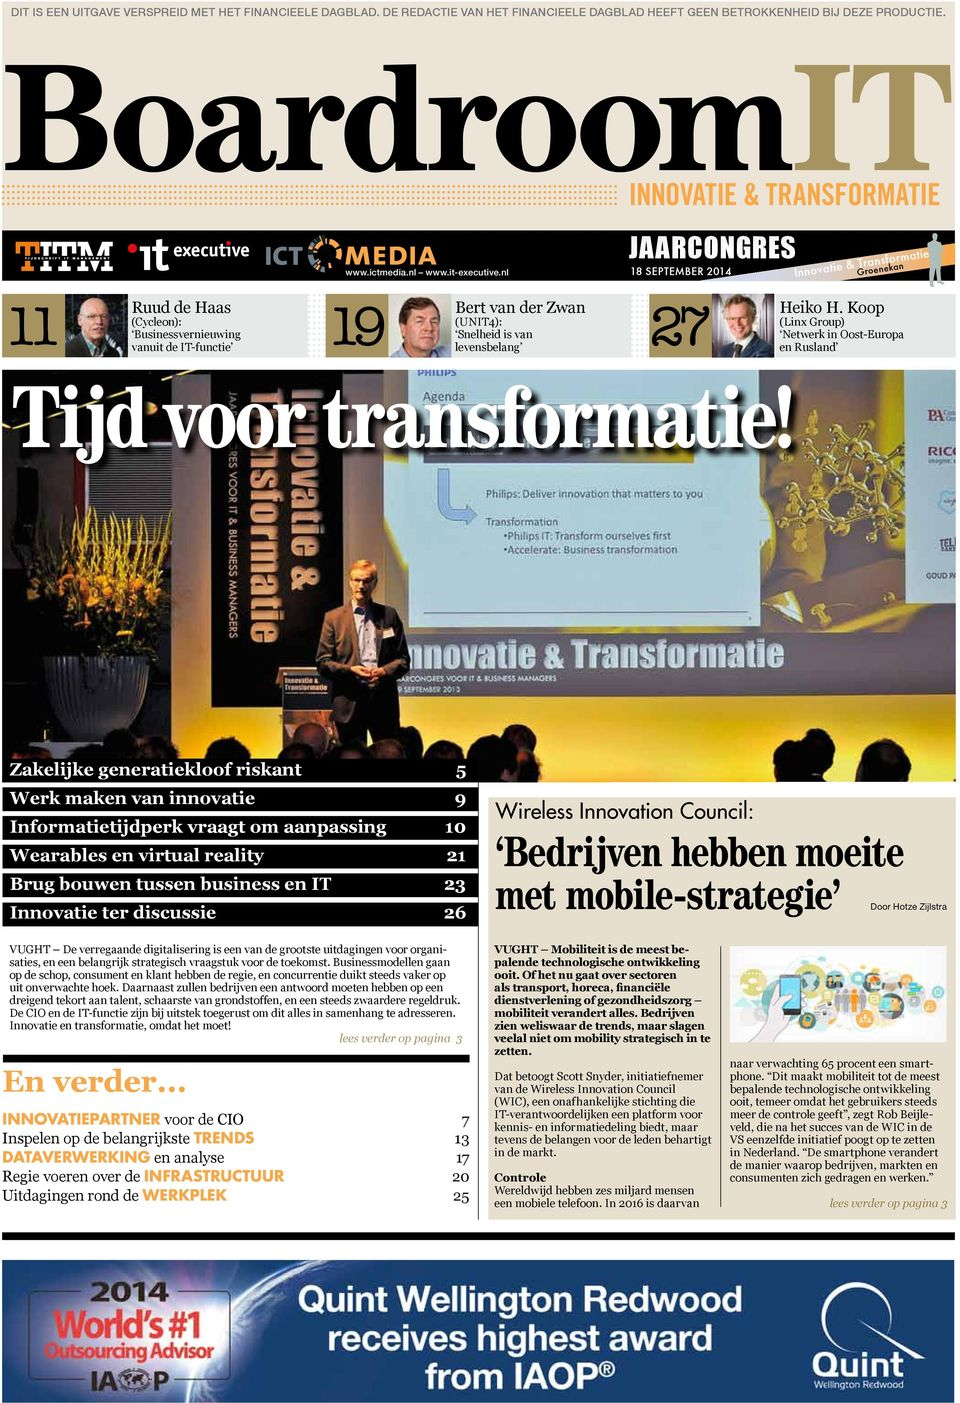 nl JAARCONGRES 18 september 2014 Innovatie & Transformatie Groenekan 11 Ruud de Haas 19 (Cycleon): Businessvernieuwing vanuit de IT-functie Bert van der Zwan (UNIT4): Snelheid is van levensbelang 27